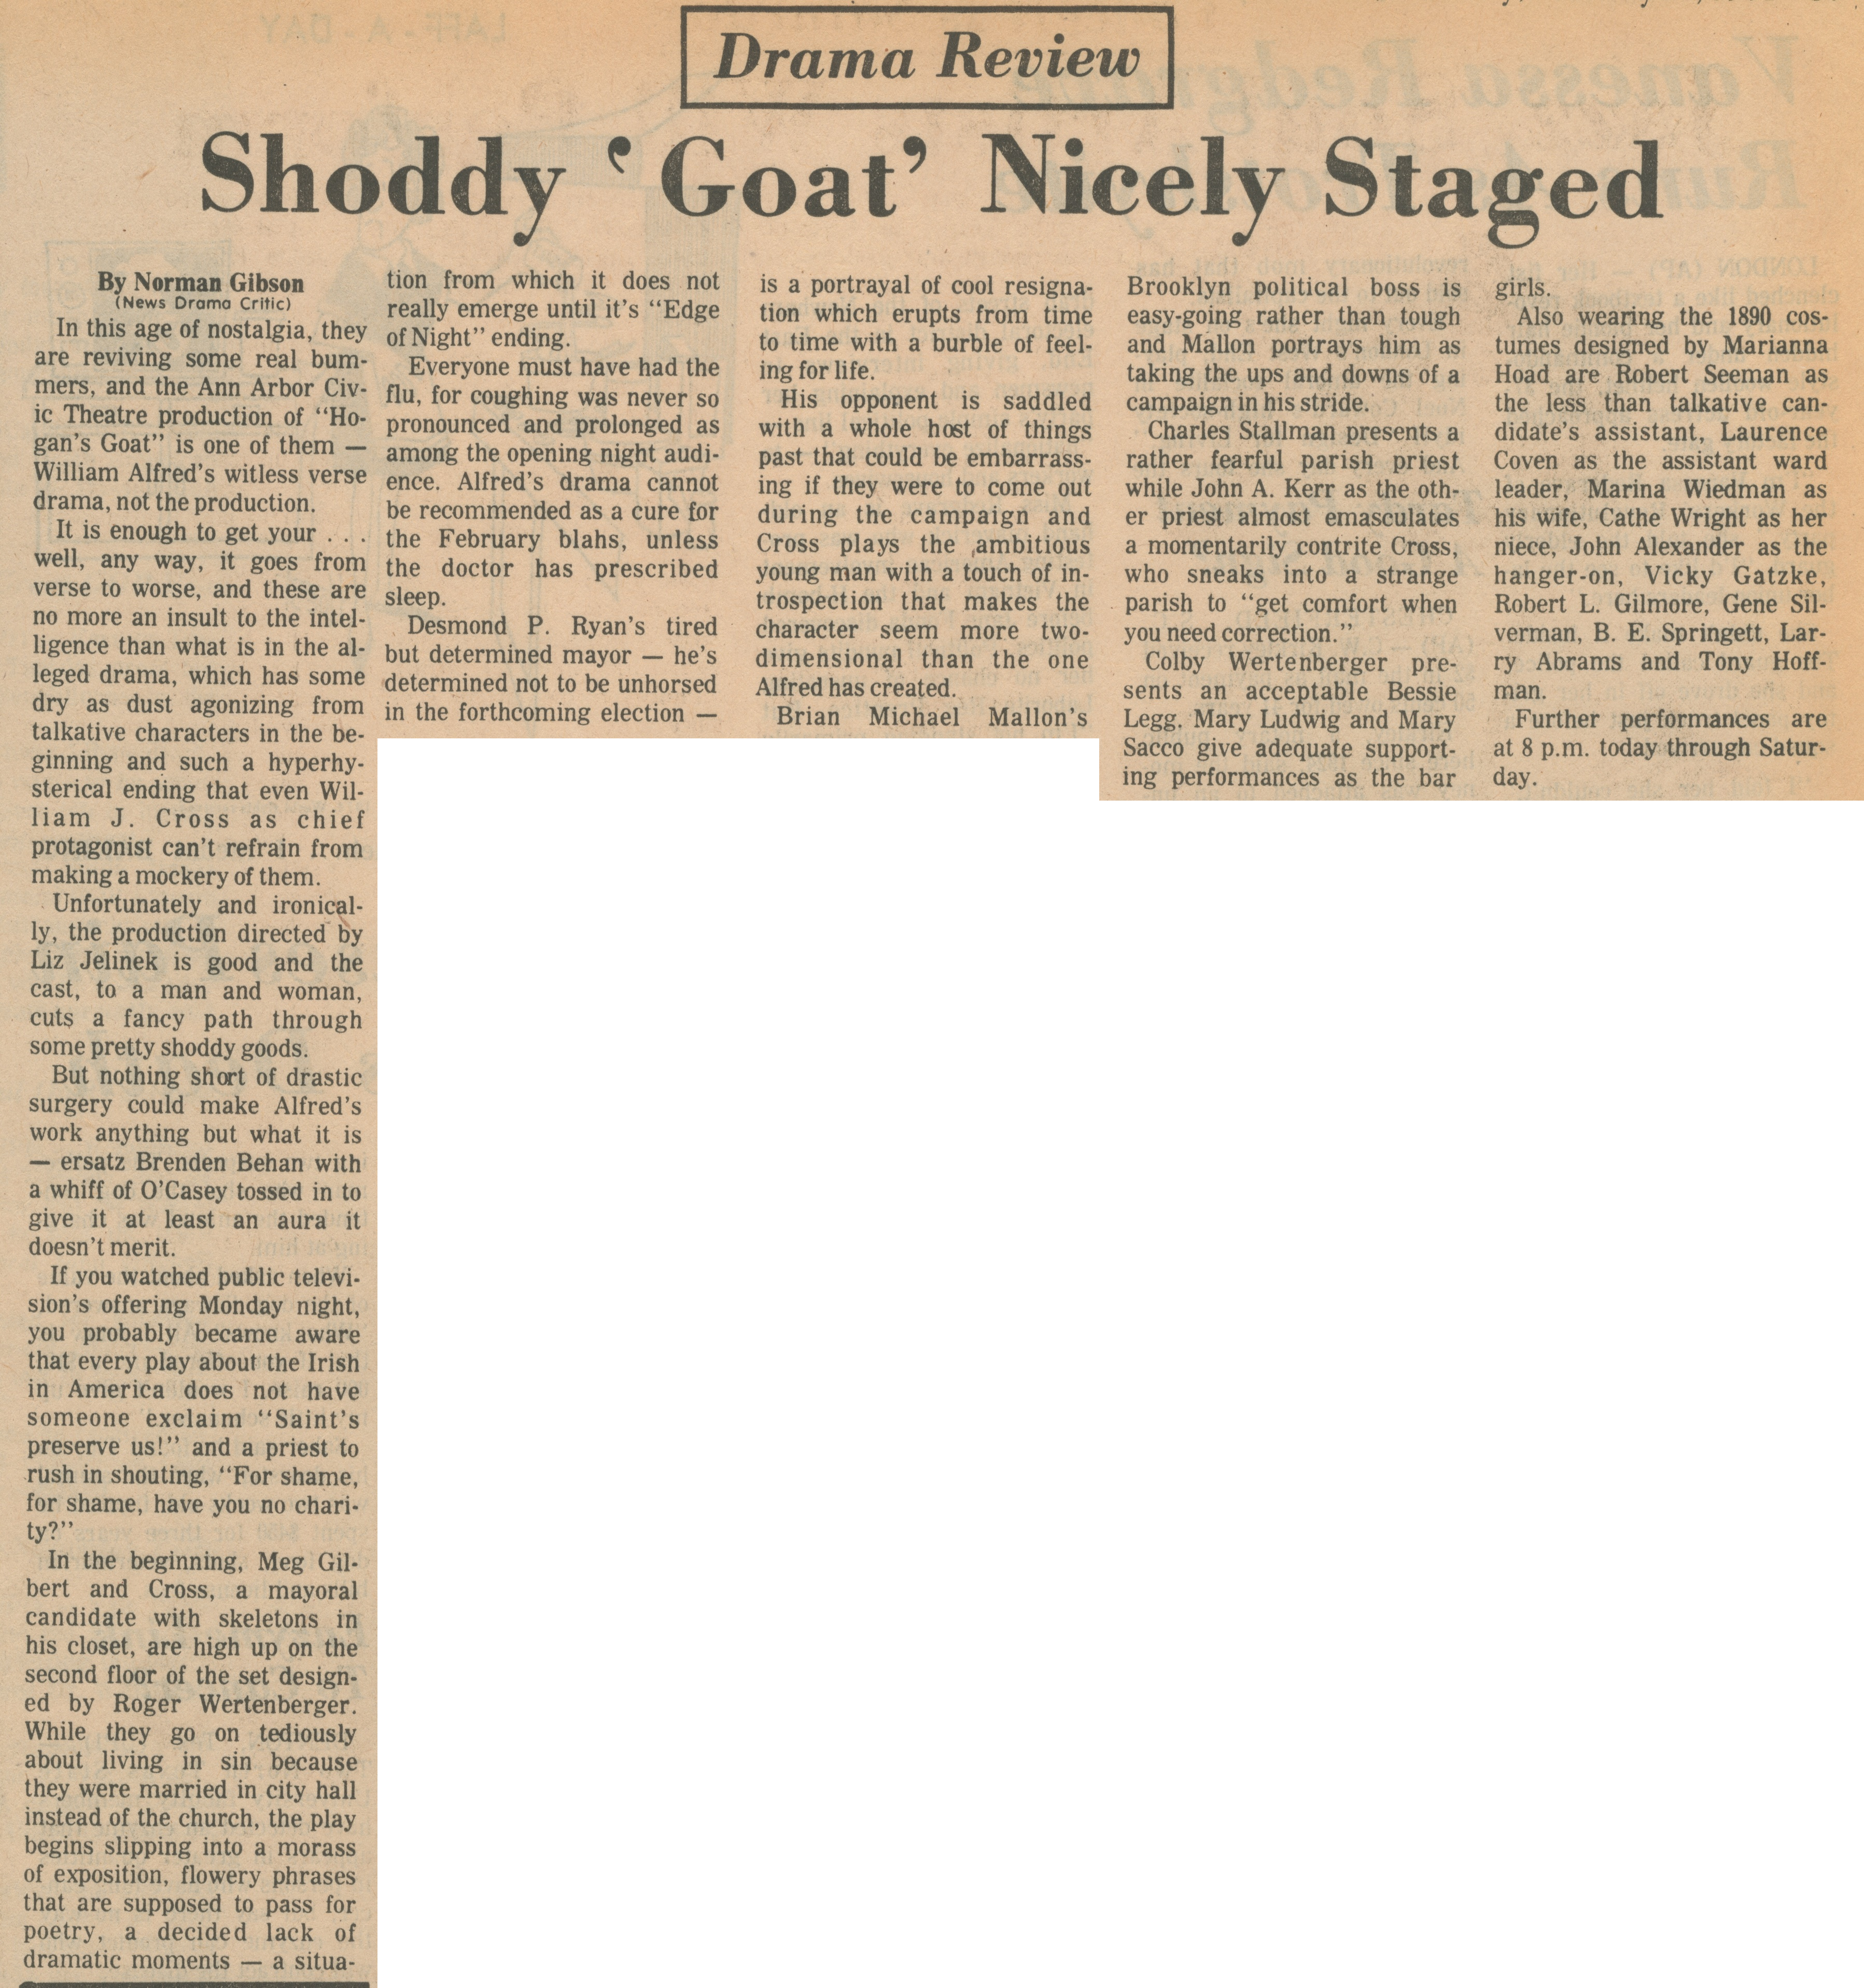 Shoddy 'Goat' Nicely Staged image